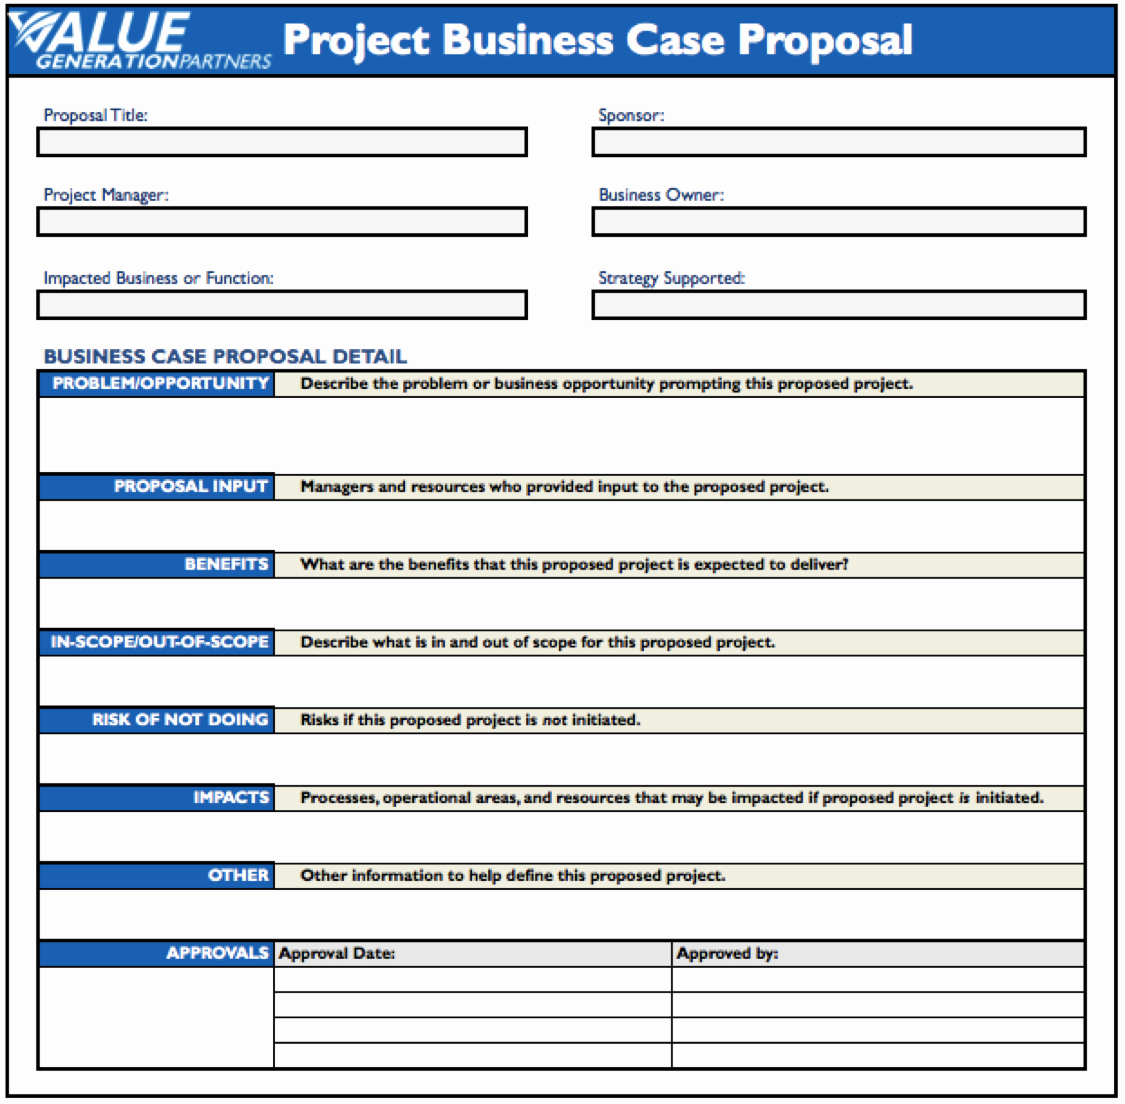 Generating Value by Using A Project Business Case Proposal